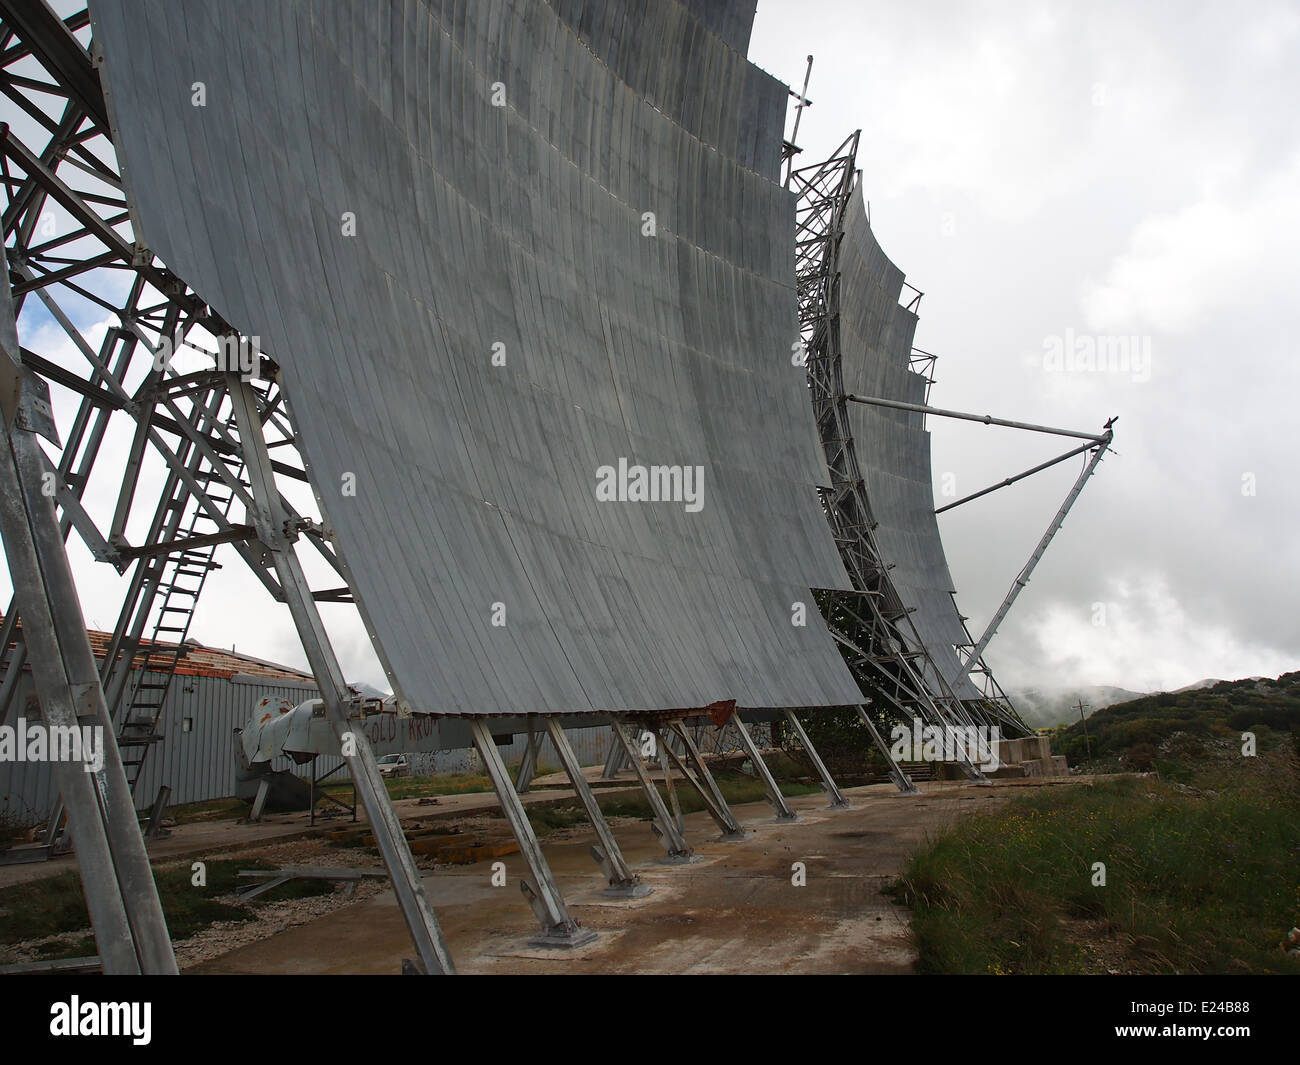 Radio Relay Station Former USAF microwave relay station ACE-High system at Lefkada, Greece, photo 4 - Stock Image